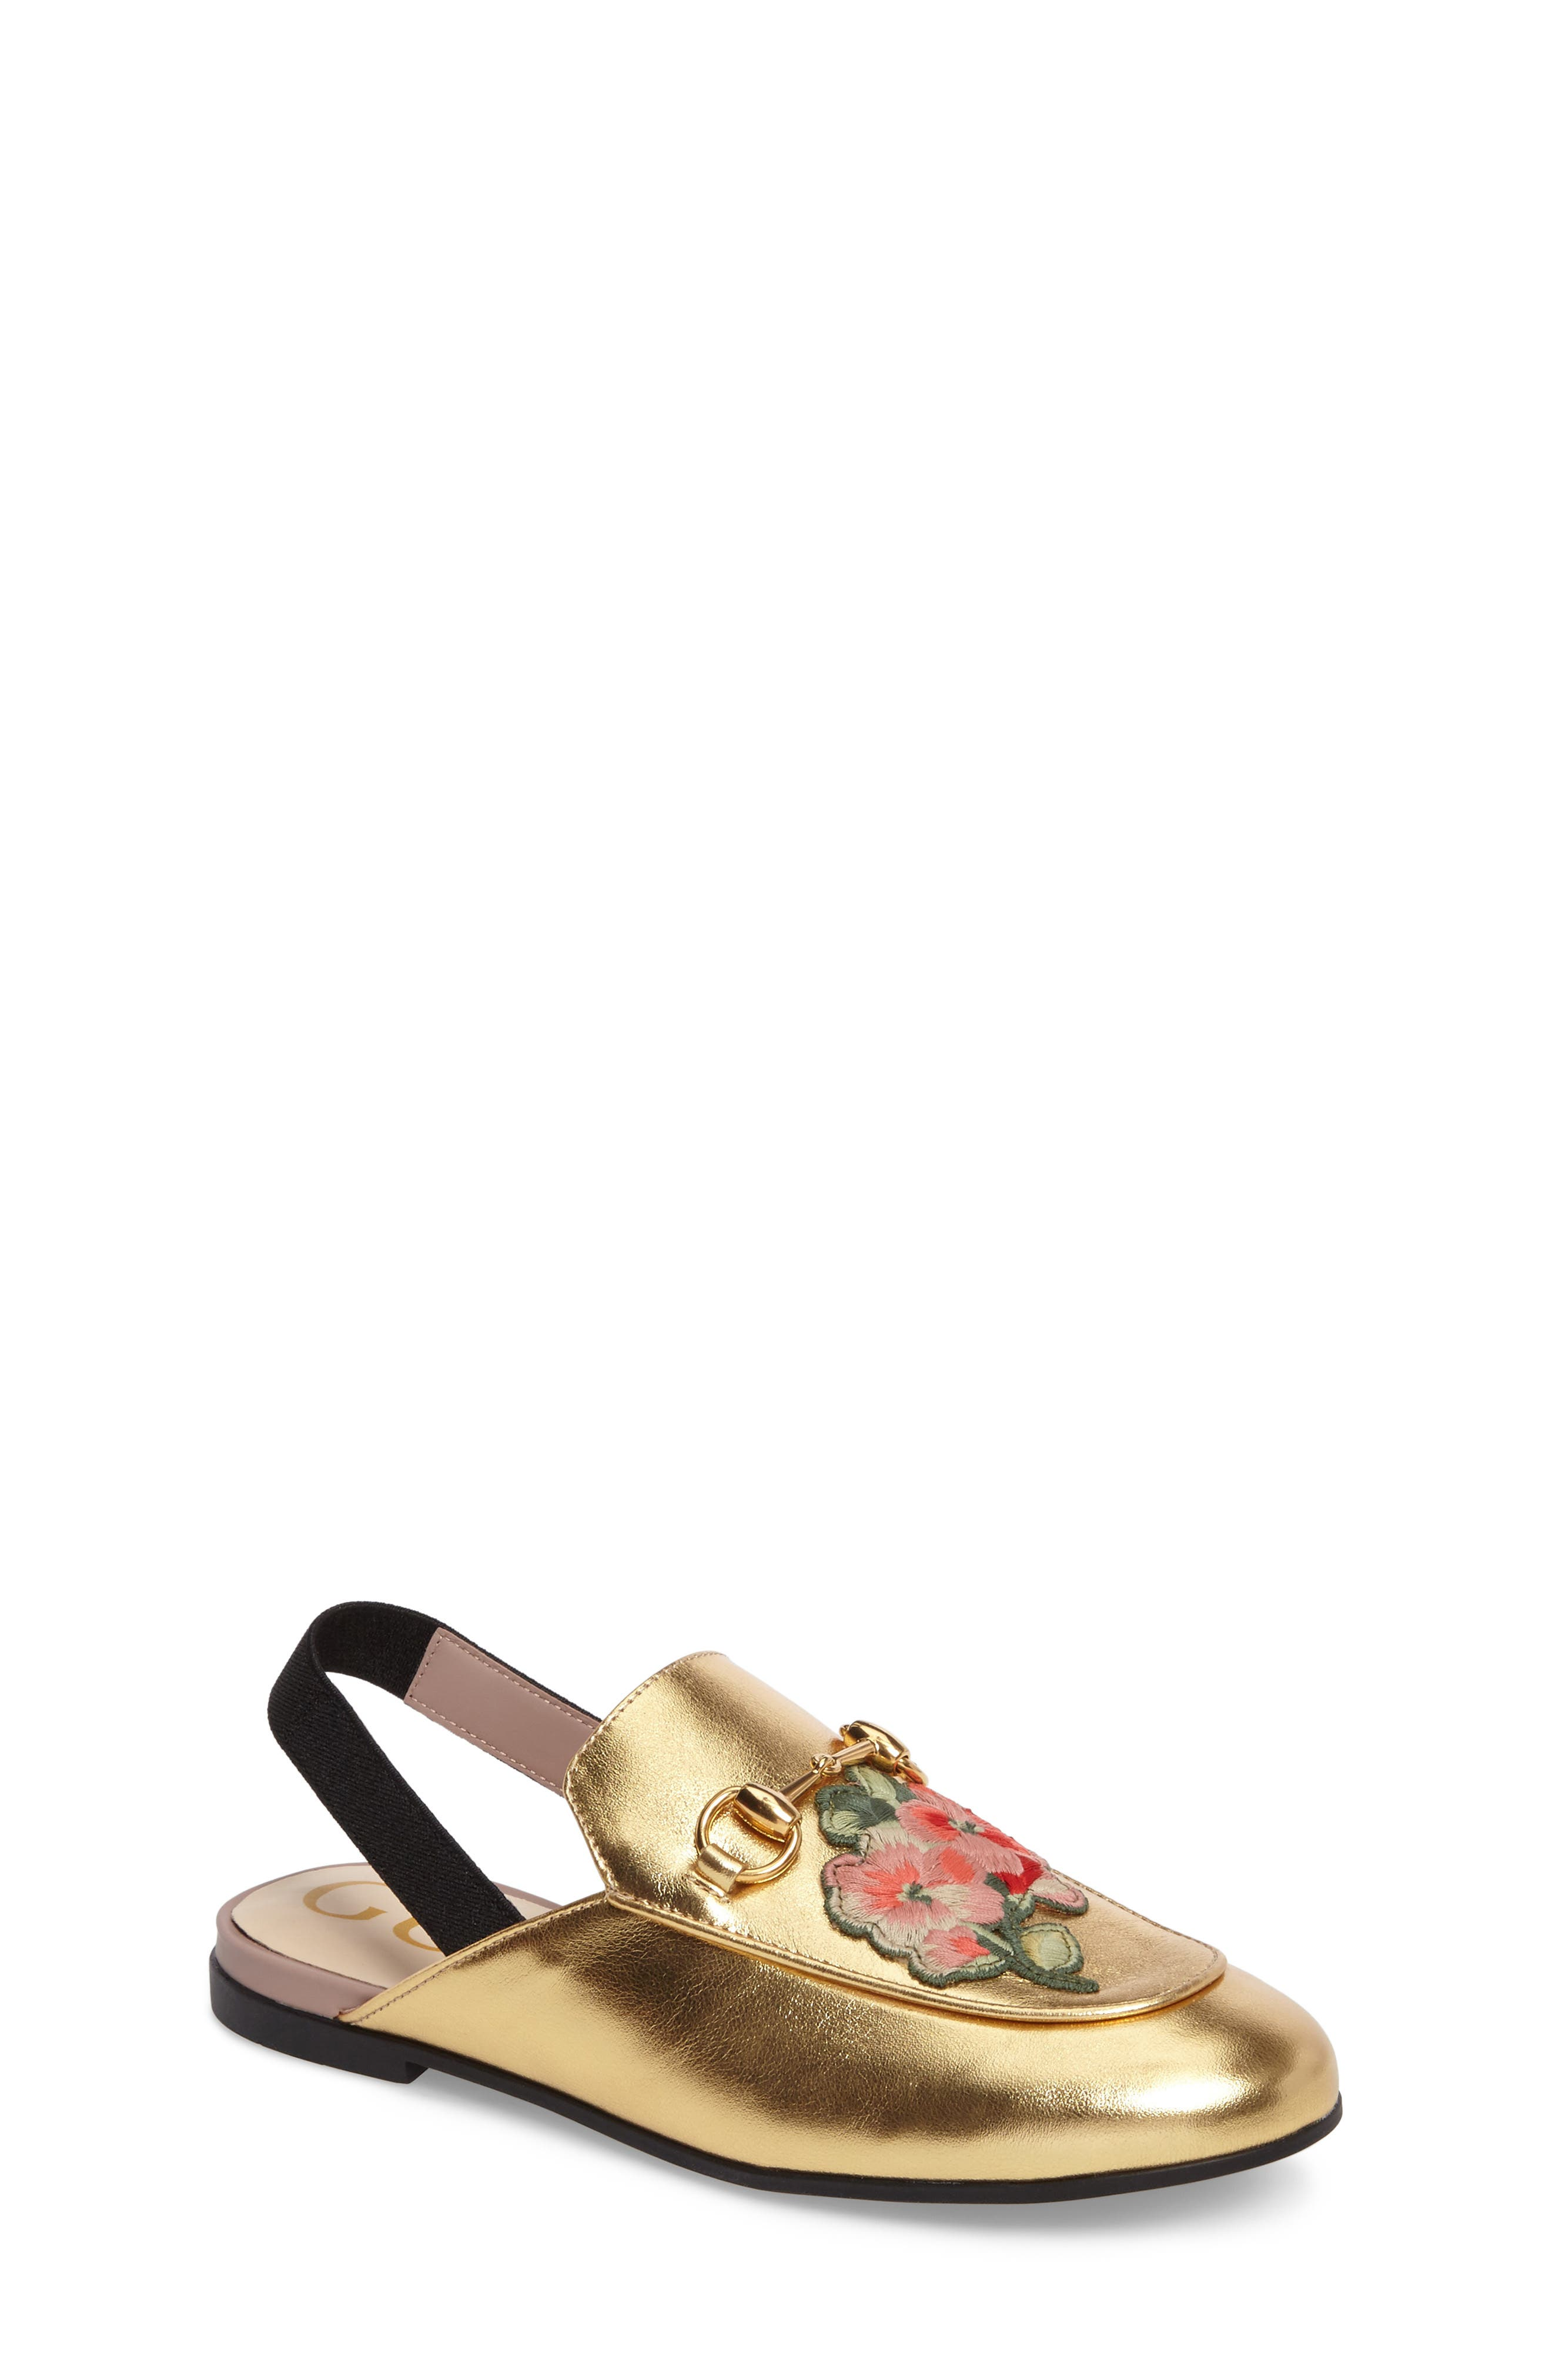 GUCCI Princetown Loafer